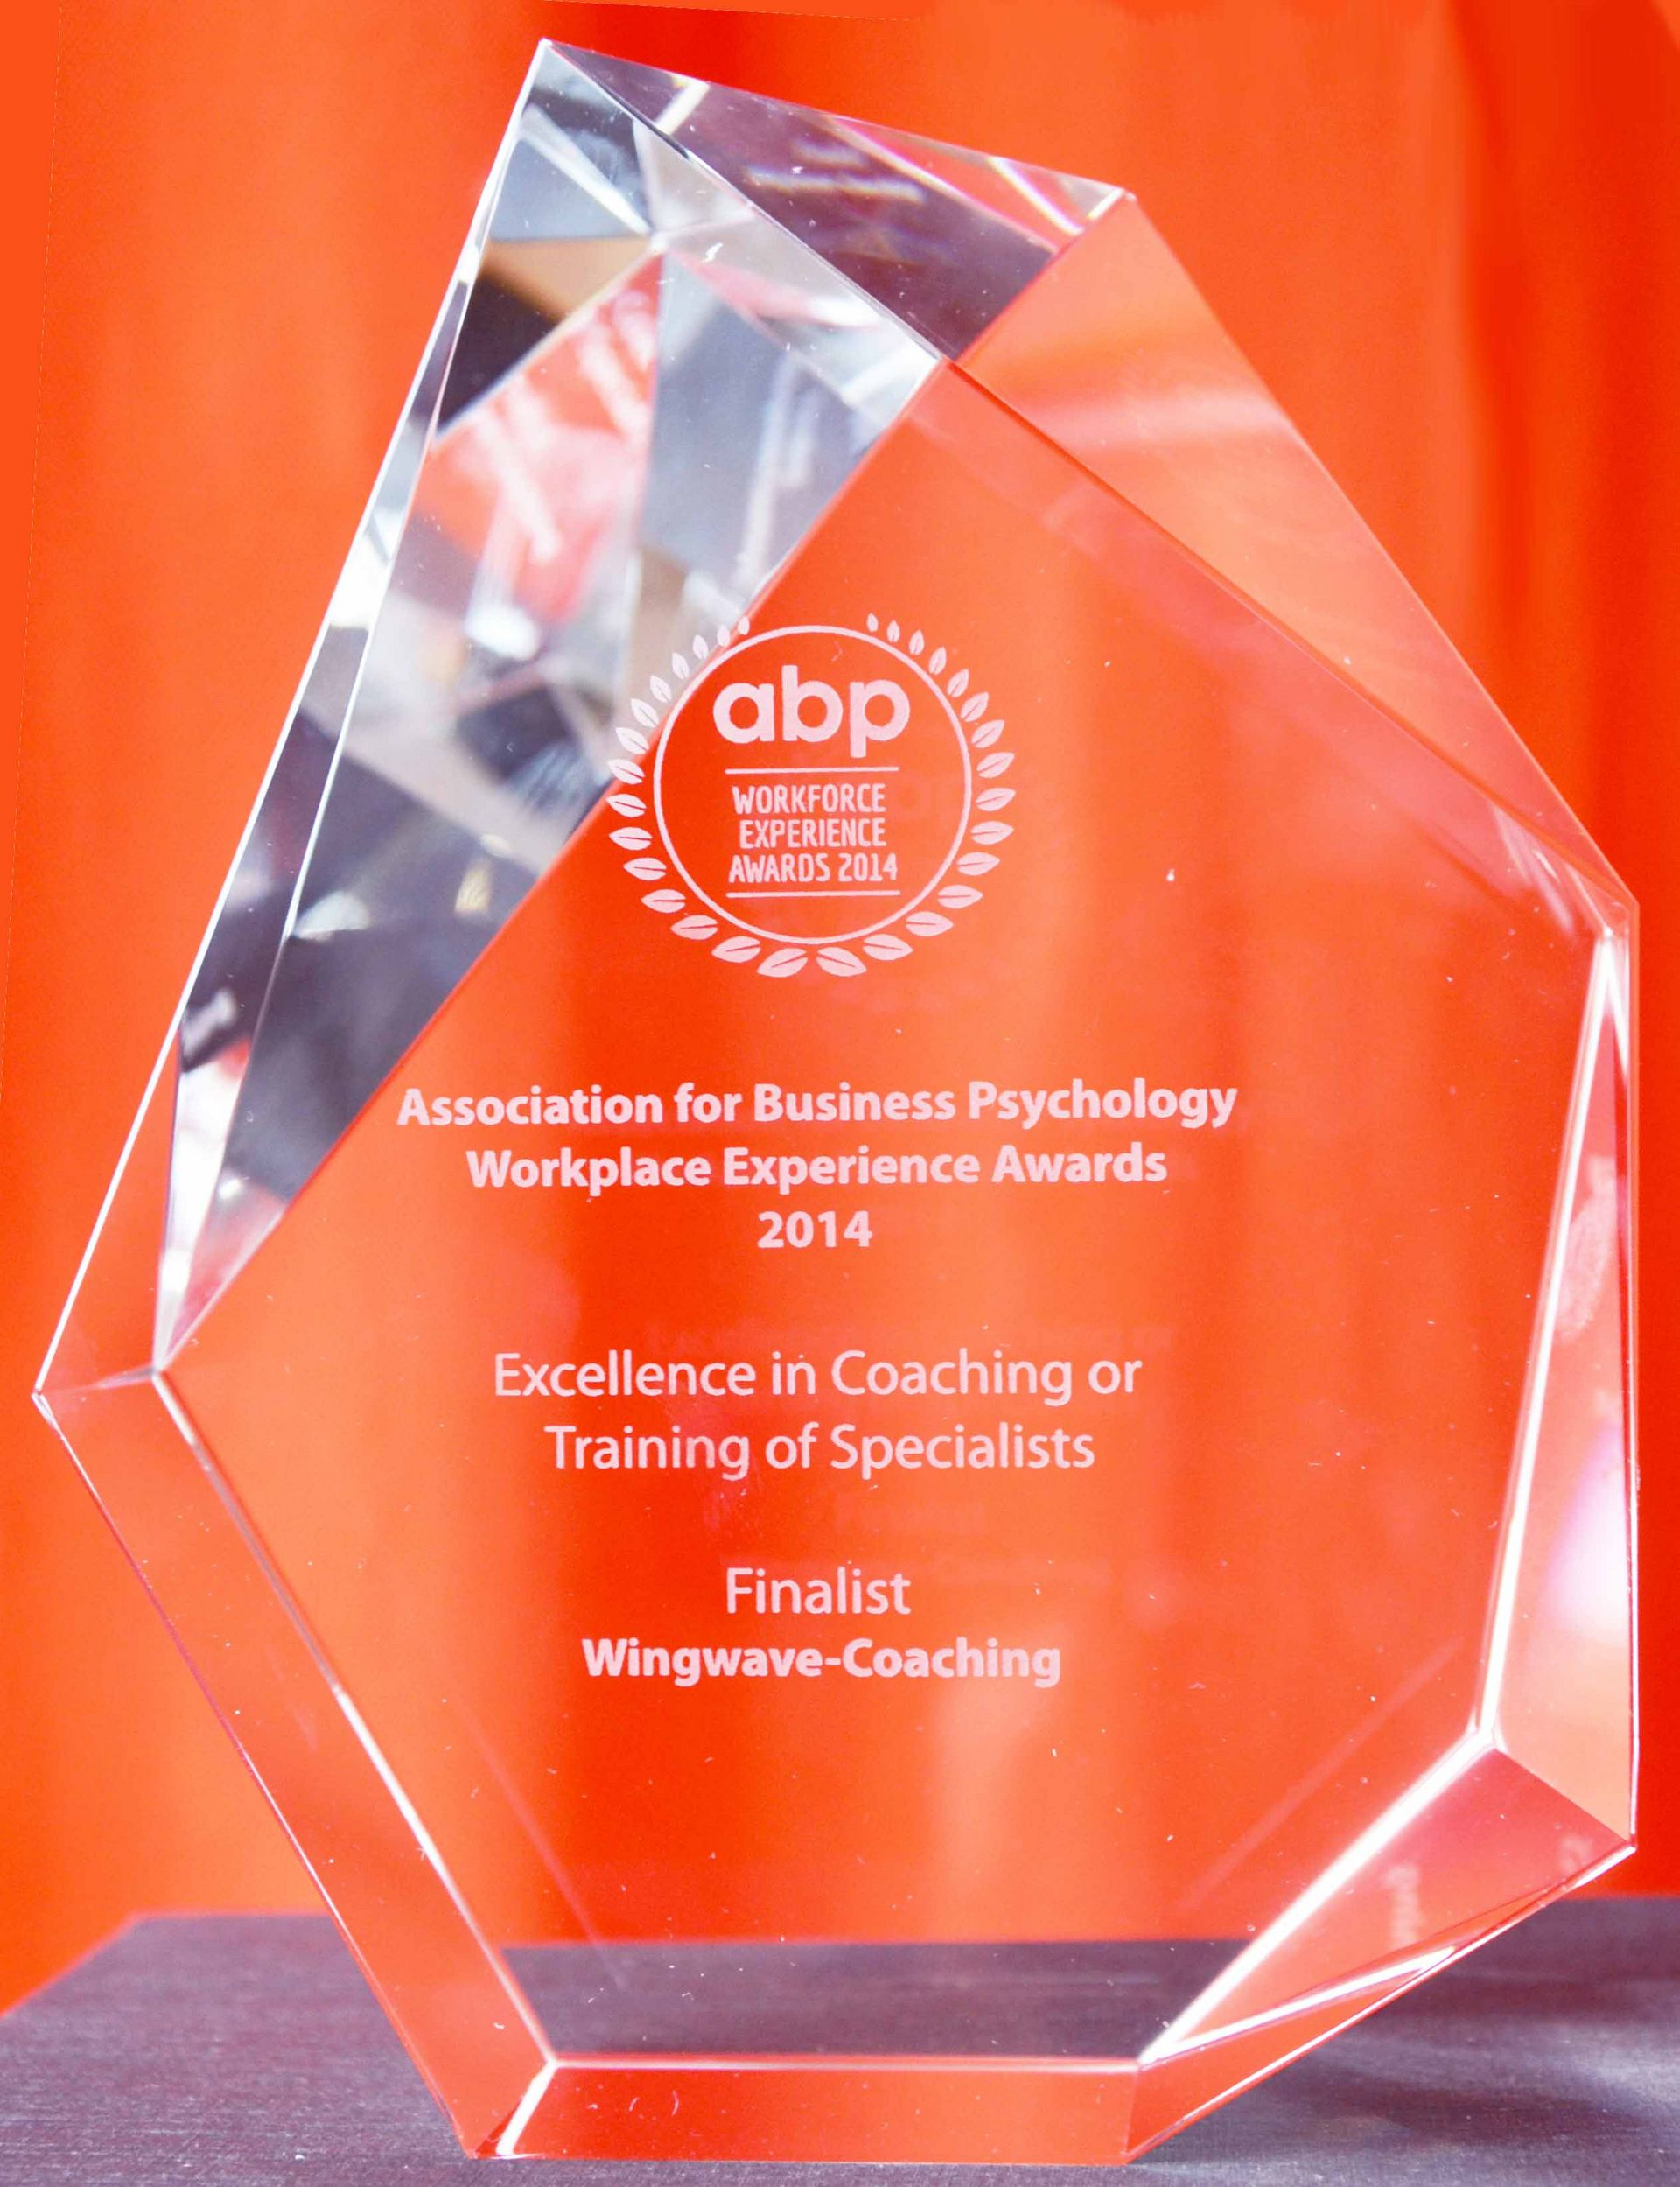 La formation de coaching wingwave reconnue par l'association for Business Psychology Workplace Experience Awards 2014